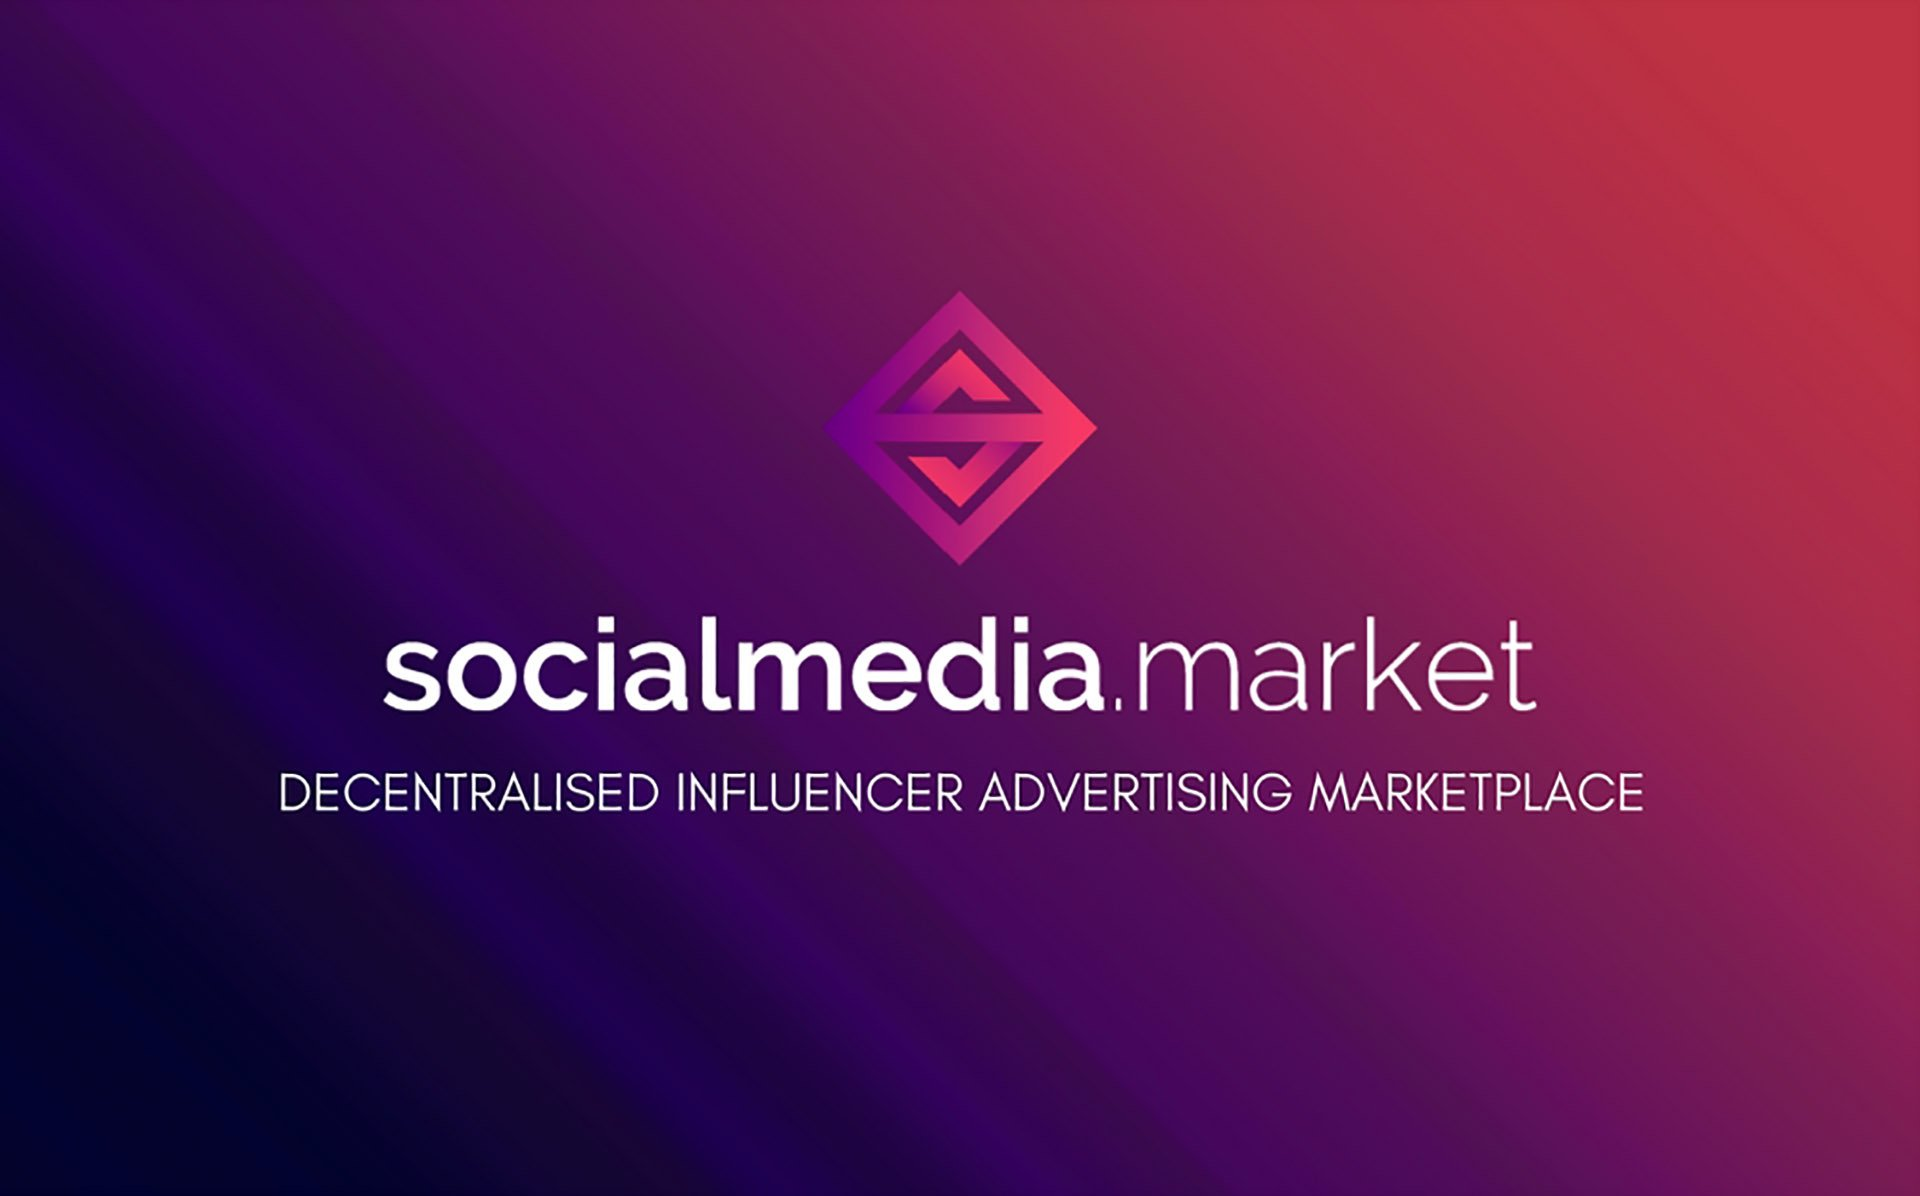 SocialMedia.Market Concludes Their Successful ICO as They Prepare to Launch Their Full Platform This Fall